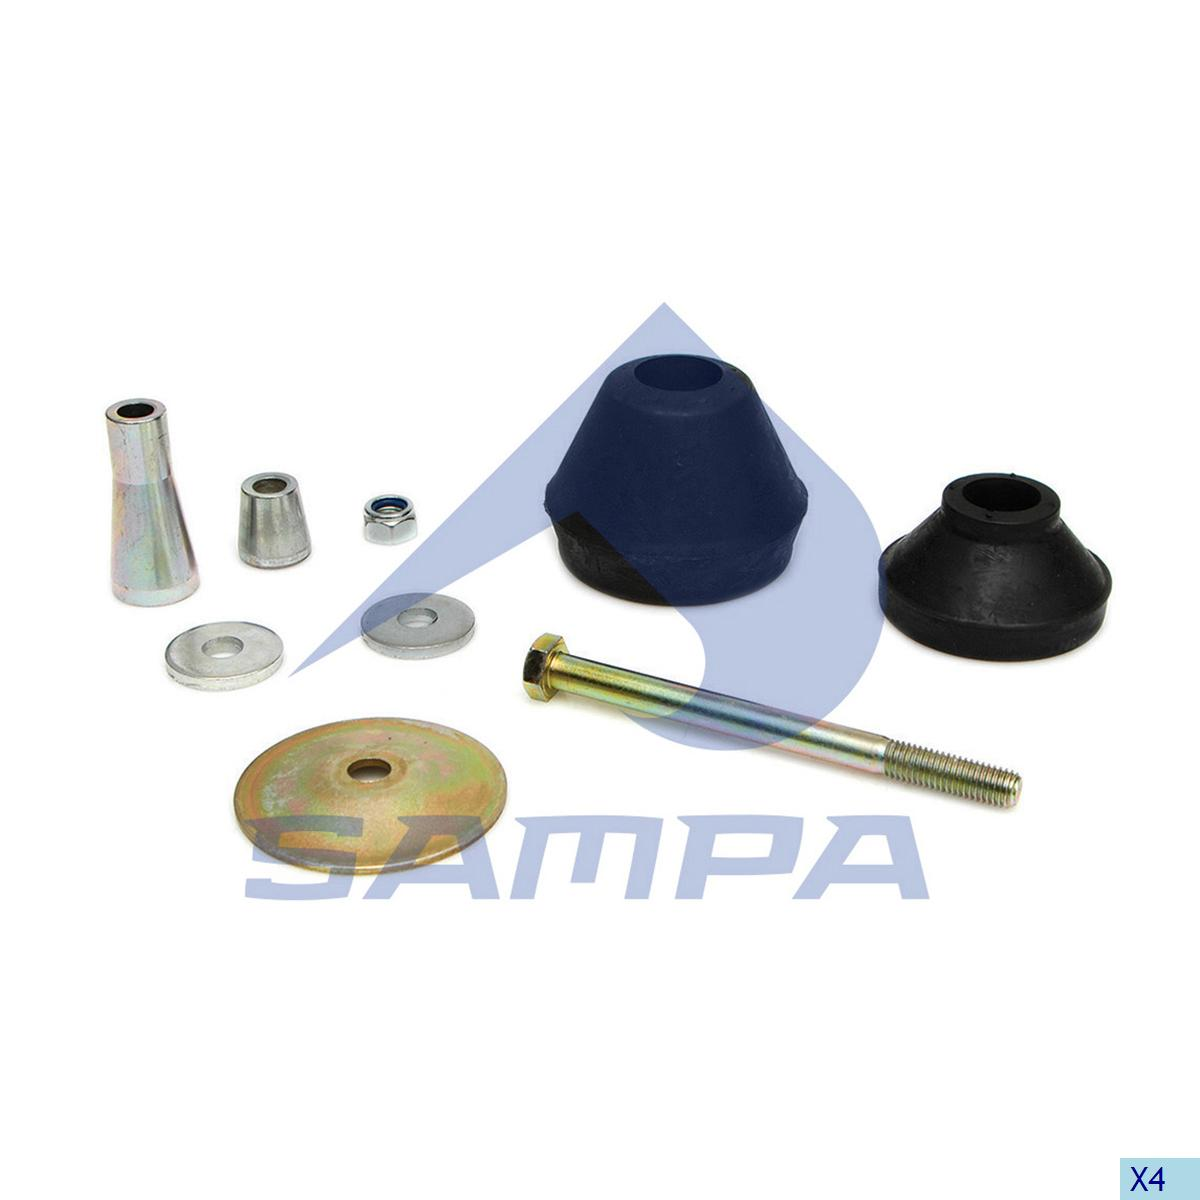 Repair Kit, Engine, Mercedes, Engine